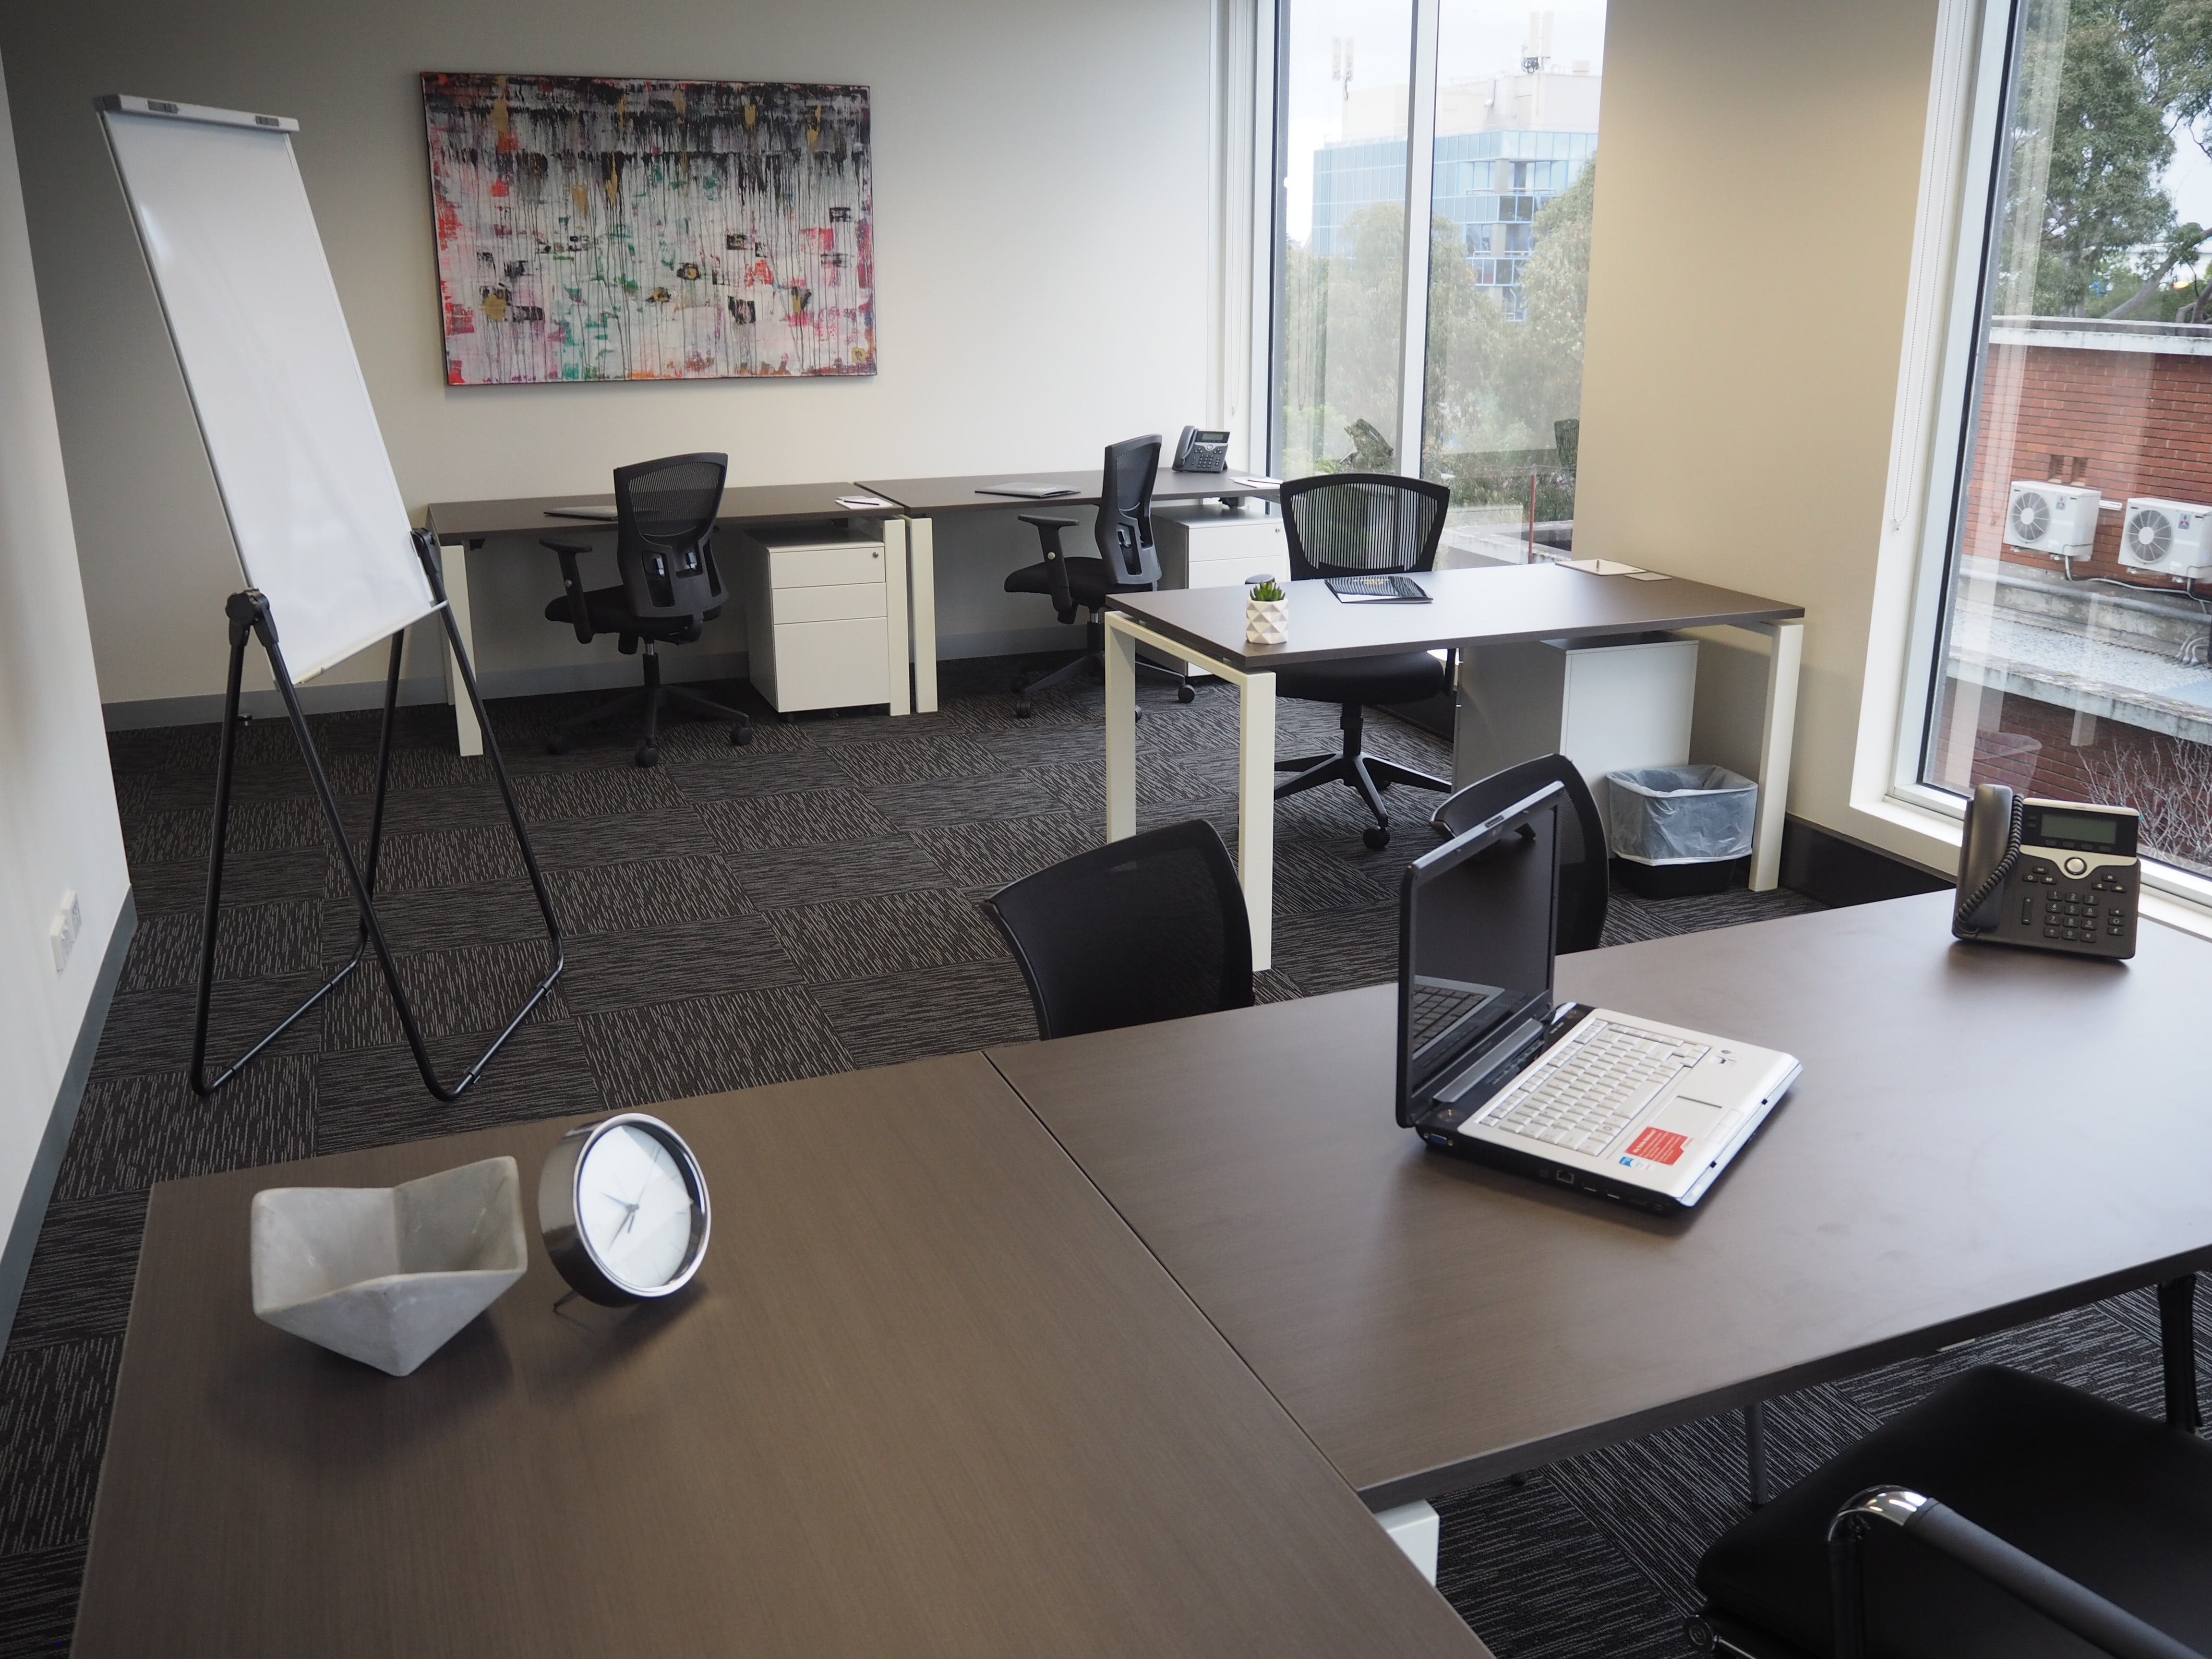 Office 1, serviced office at Victory Offices | Box Hill, image 1